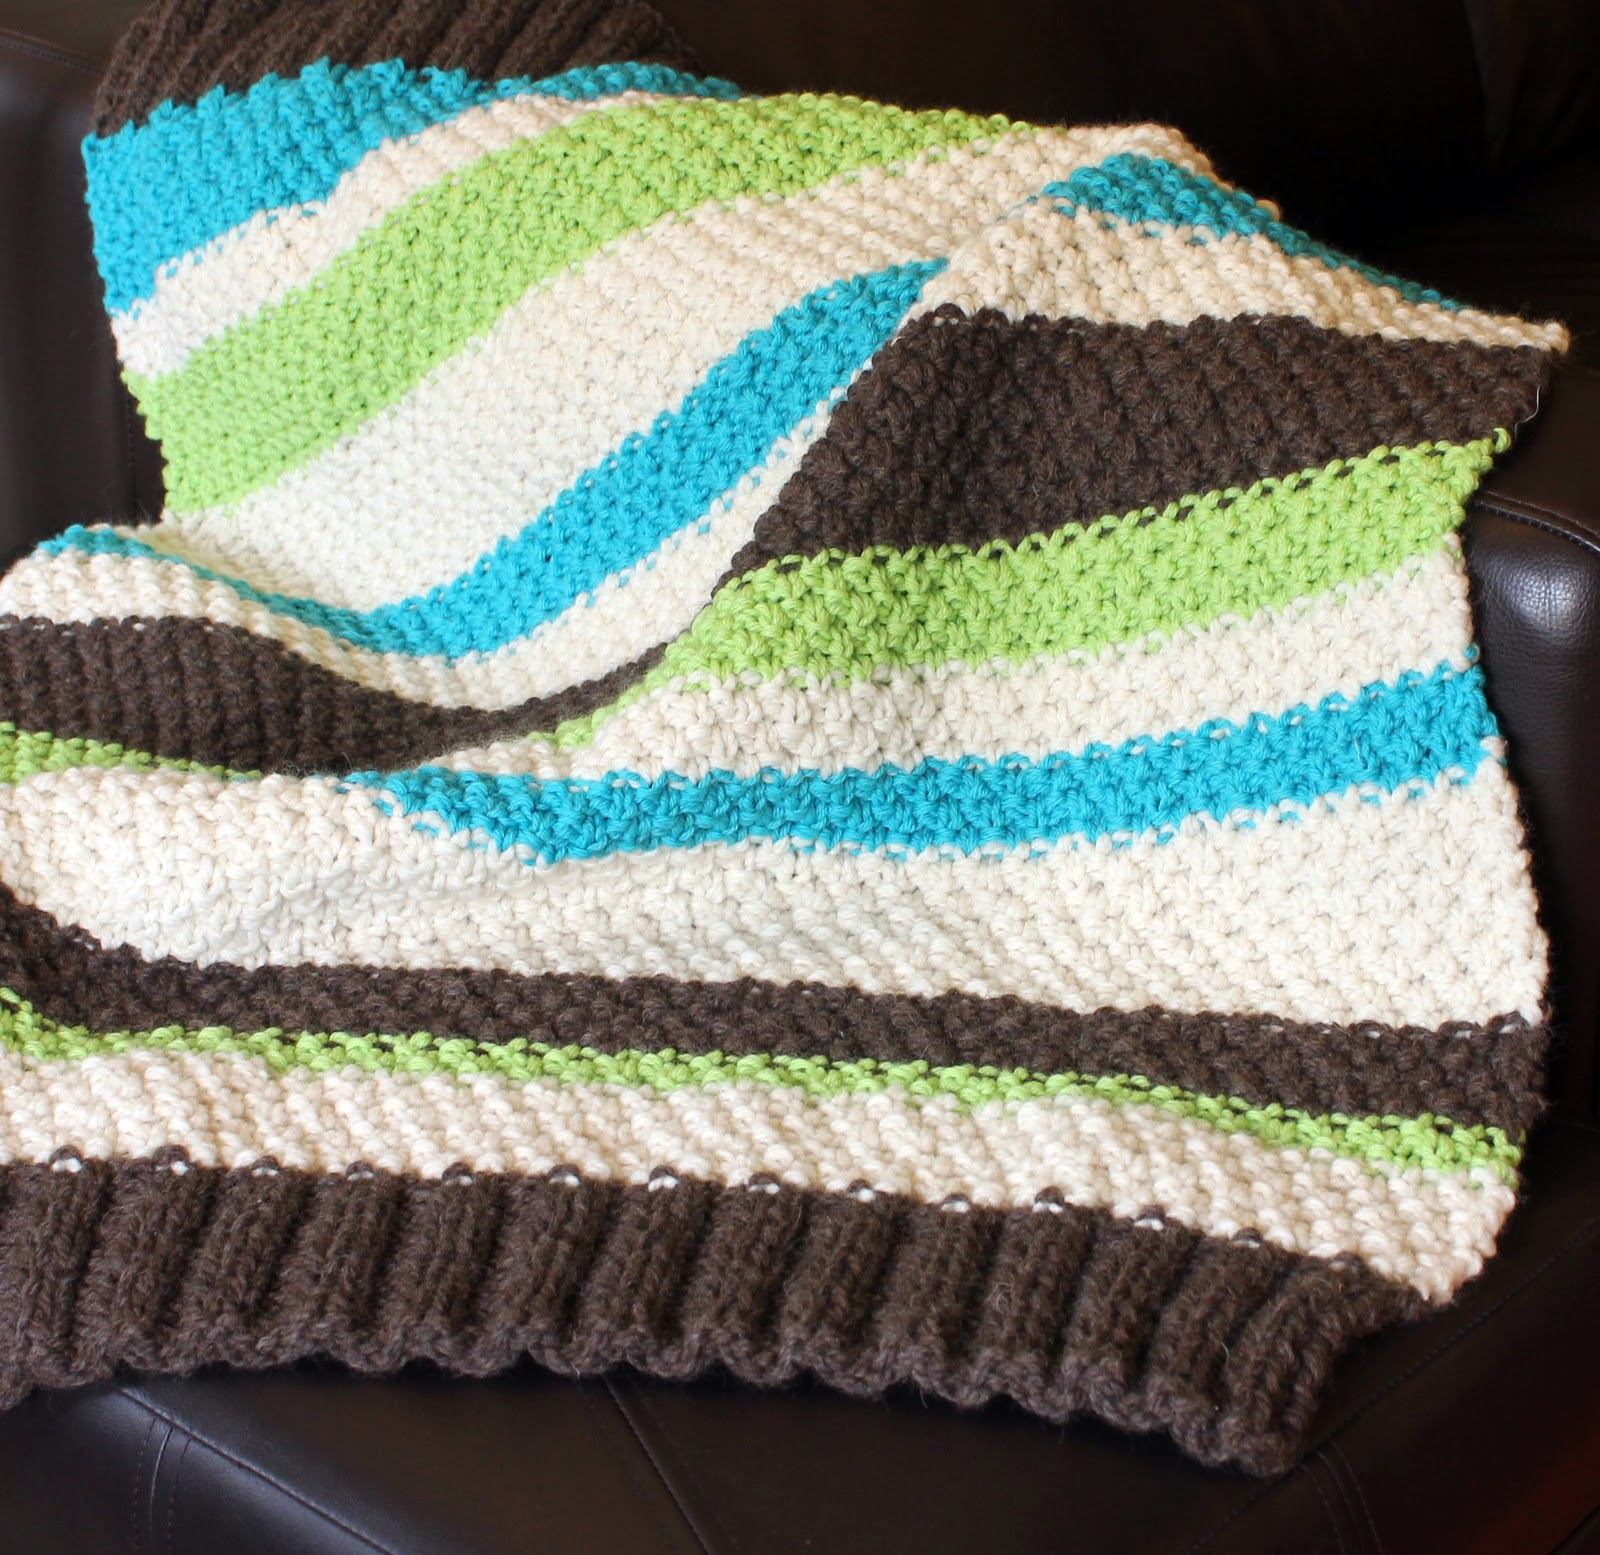 Quick Knit Baby Blanket Free Pattern : Easy Baby Blanket Knitting Pattern for Beginners - with Free Printable